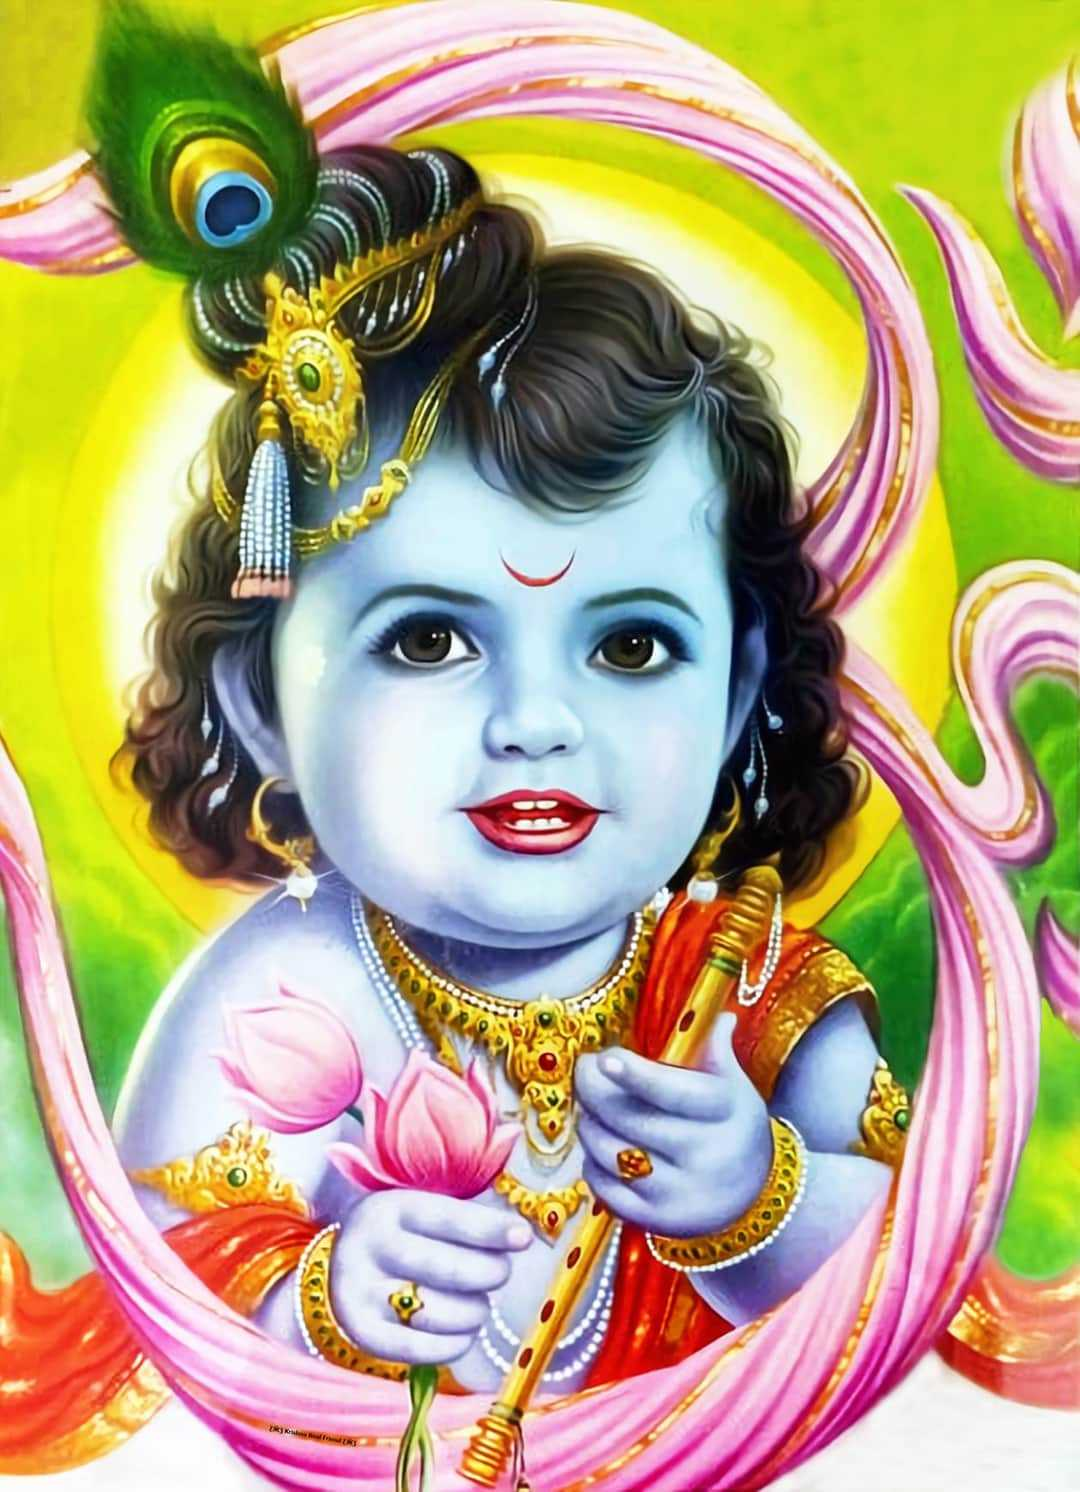 [Wallpaper] Cute Lord Krishna Smiling, Little Krishna - Little Krishna smiling wallpaper at the of his childhood. God Krishna educate the world about the law of Karma and Dharma. His whole life is a model for the new generation. His life is full of inspiration and source of joy. He played many roles to each peoples, He was a perfect child, a brother, a charioteer, a warrior, a disciple, a guru, a cowherd, a messenger, the beloved of the gopis.